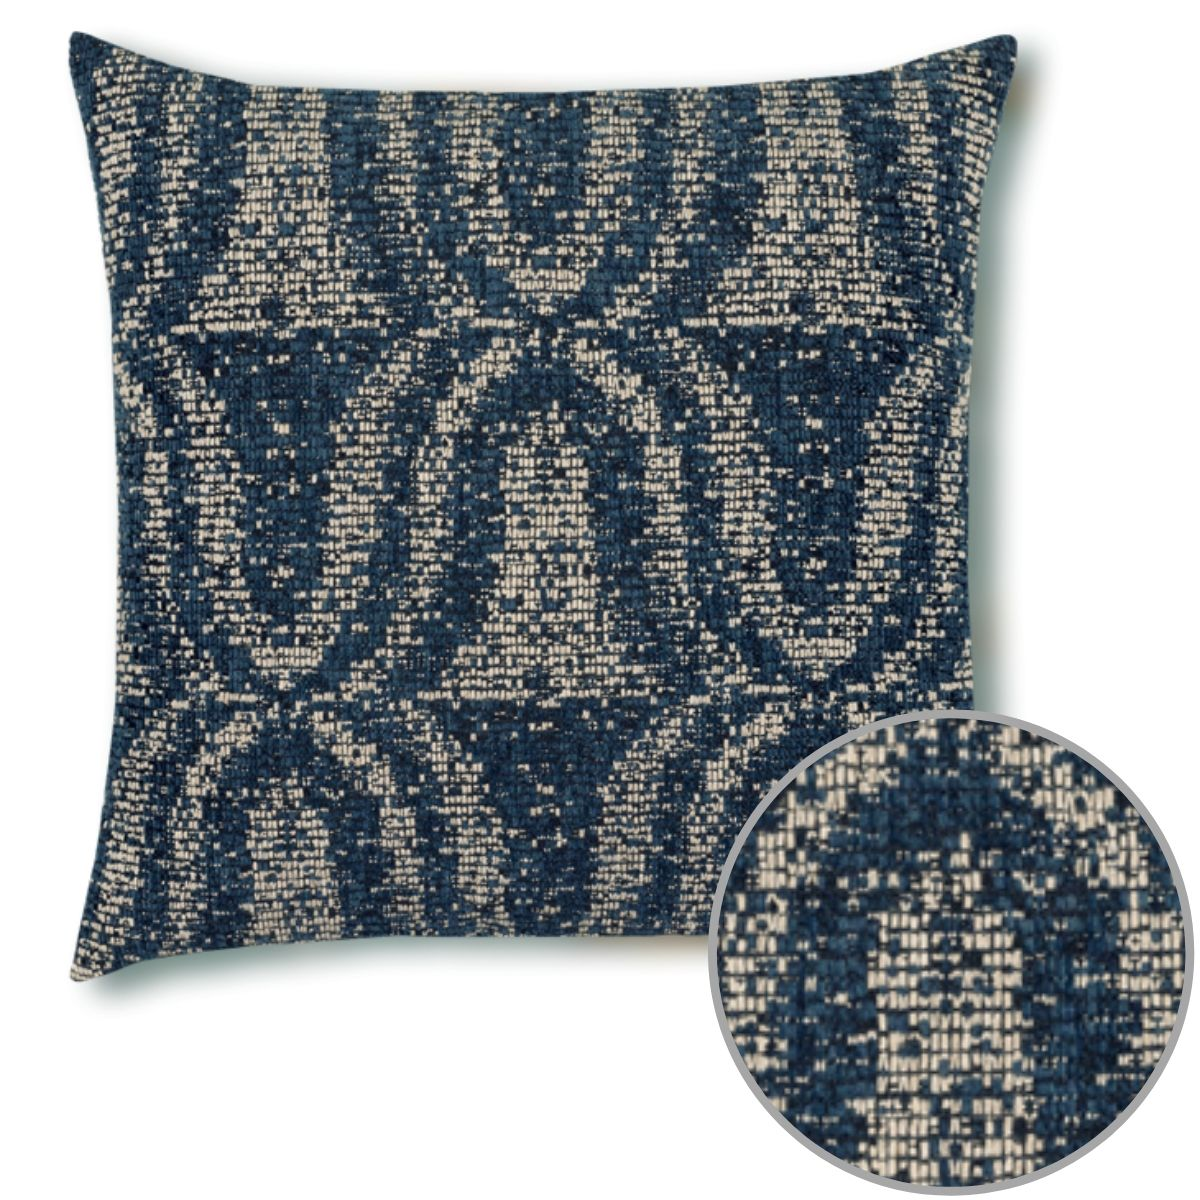 sumptuous-indigo-11q2 Pillow by Elaine Smith with inset detail